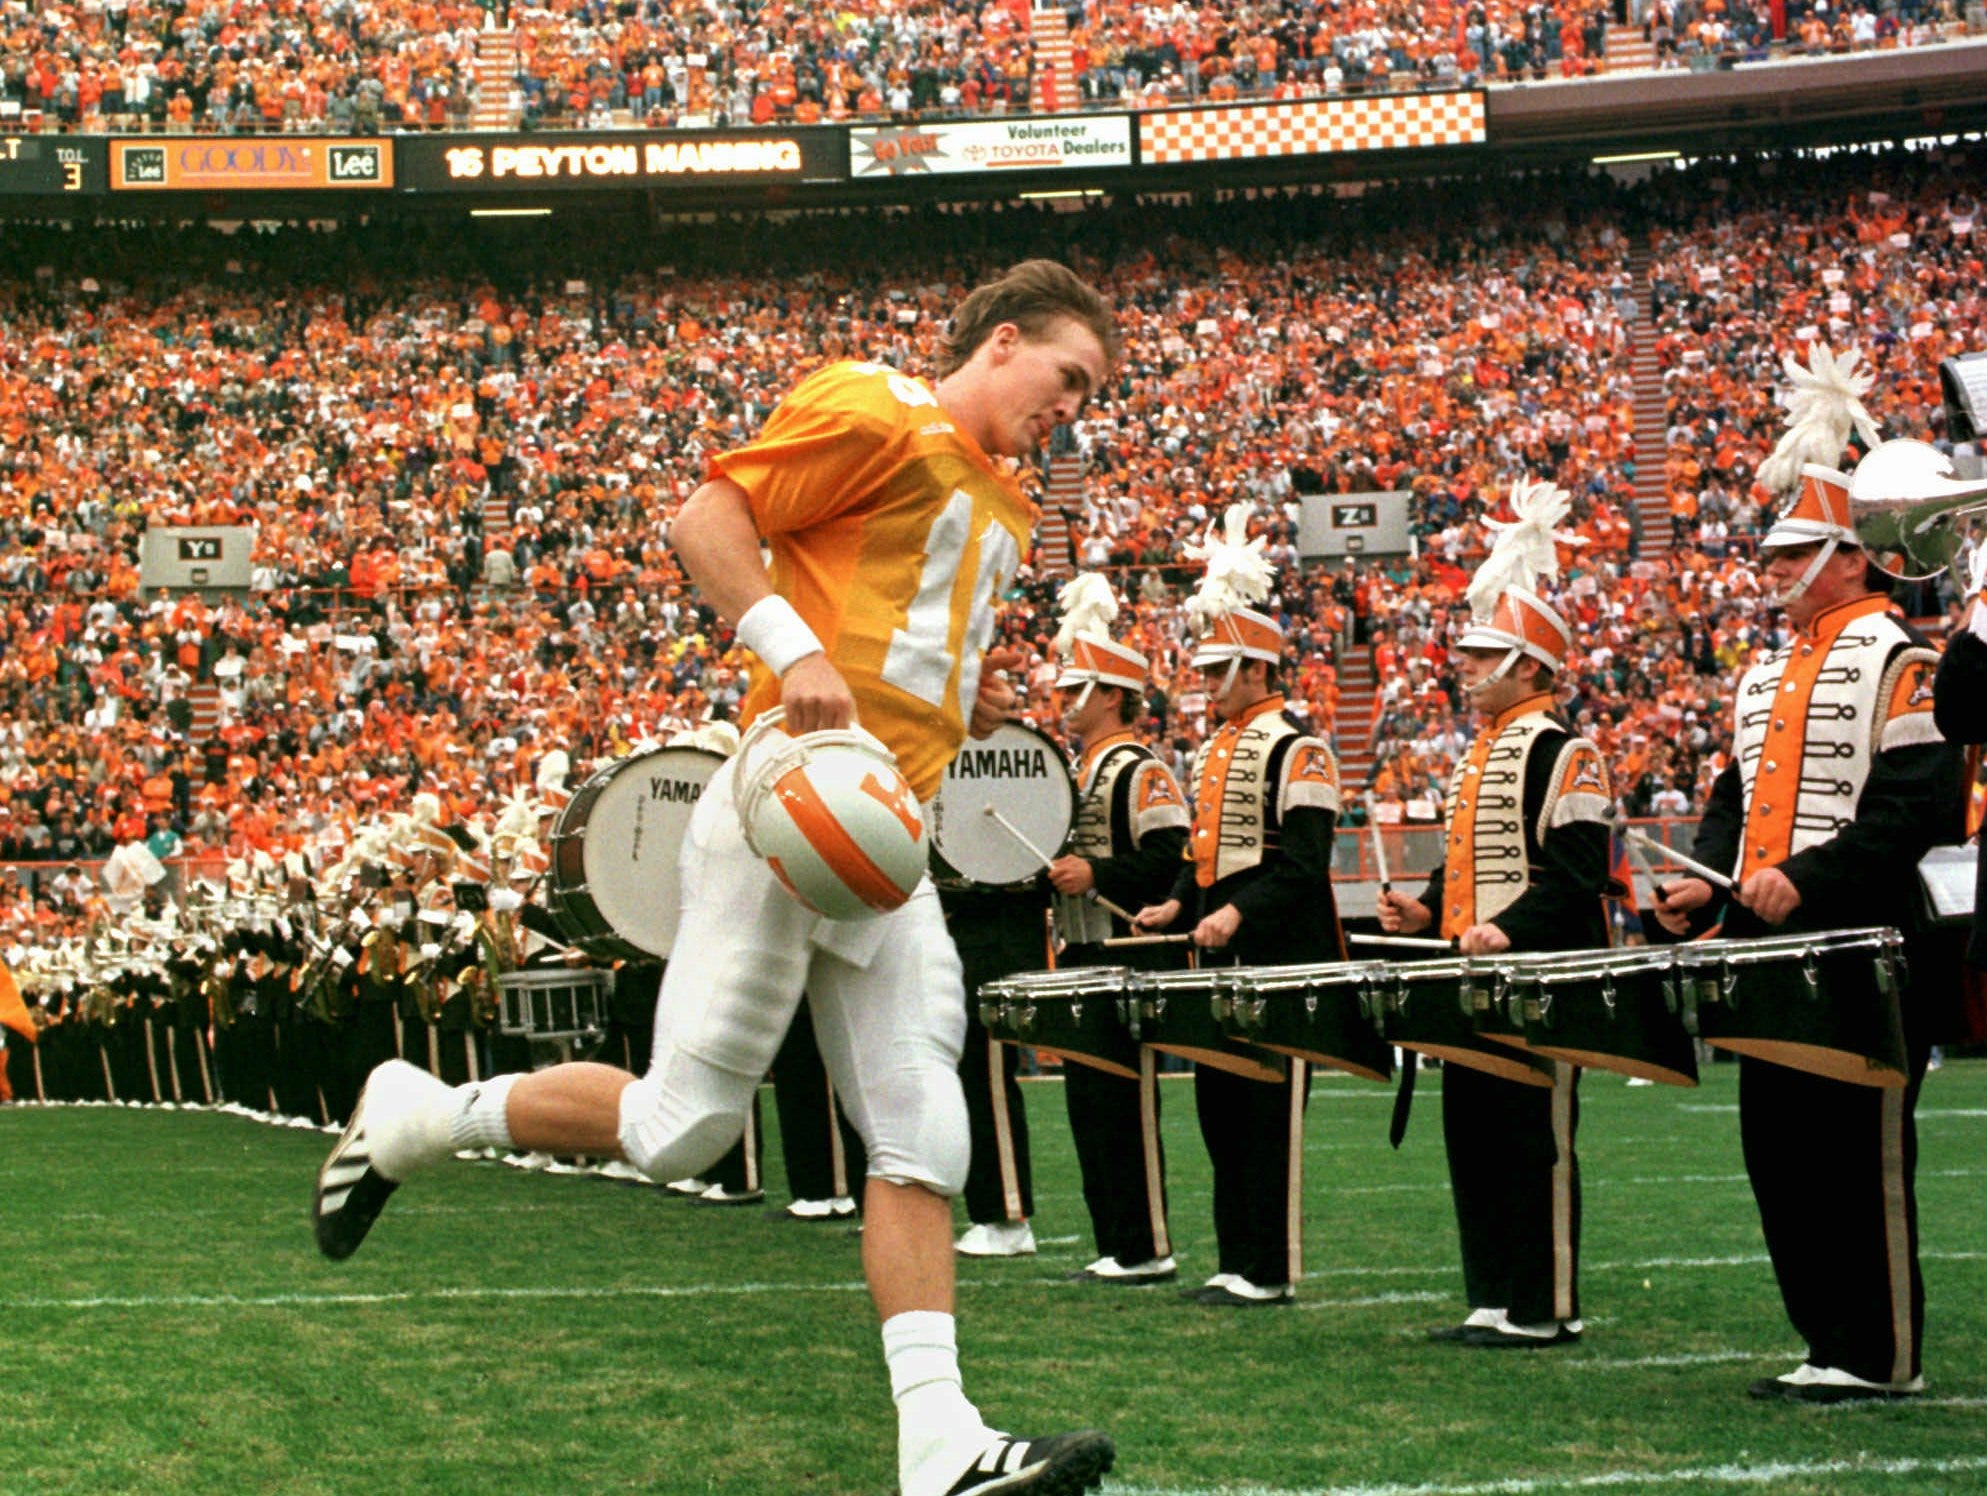 Tennessee quarterback Peyton Manning takes the field for his last home game on Saturday, Nov. 29, 1997 in Knoxville, Tenn. Tennessee defeated Vanderbilt 17-10.